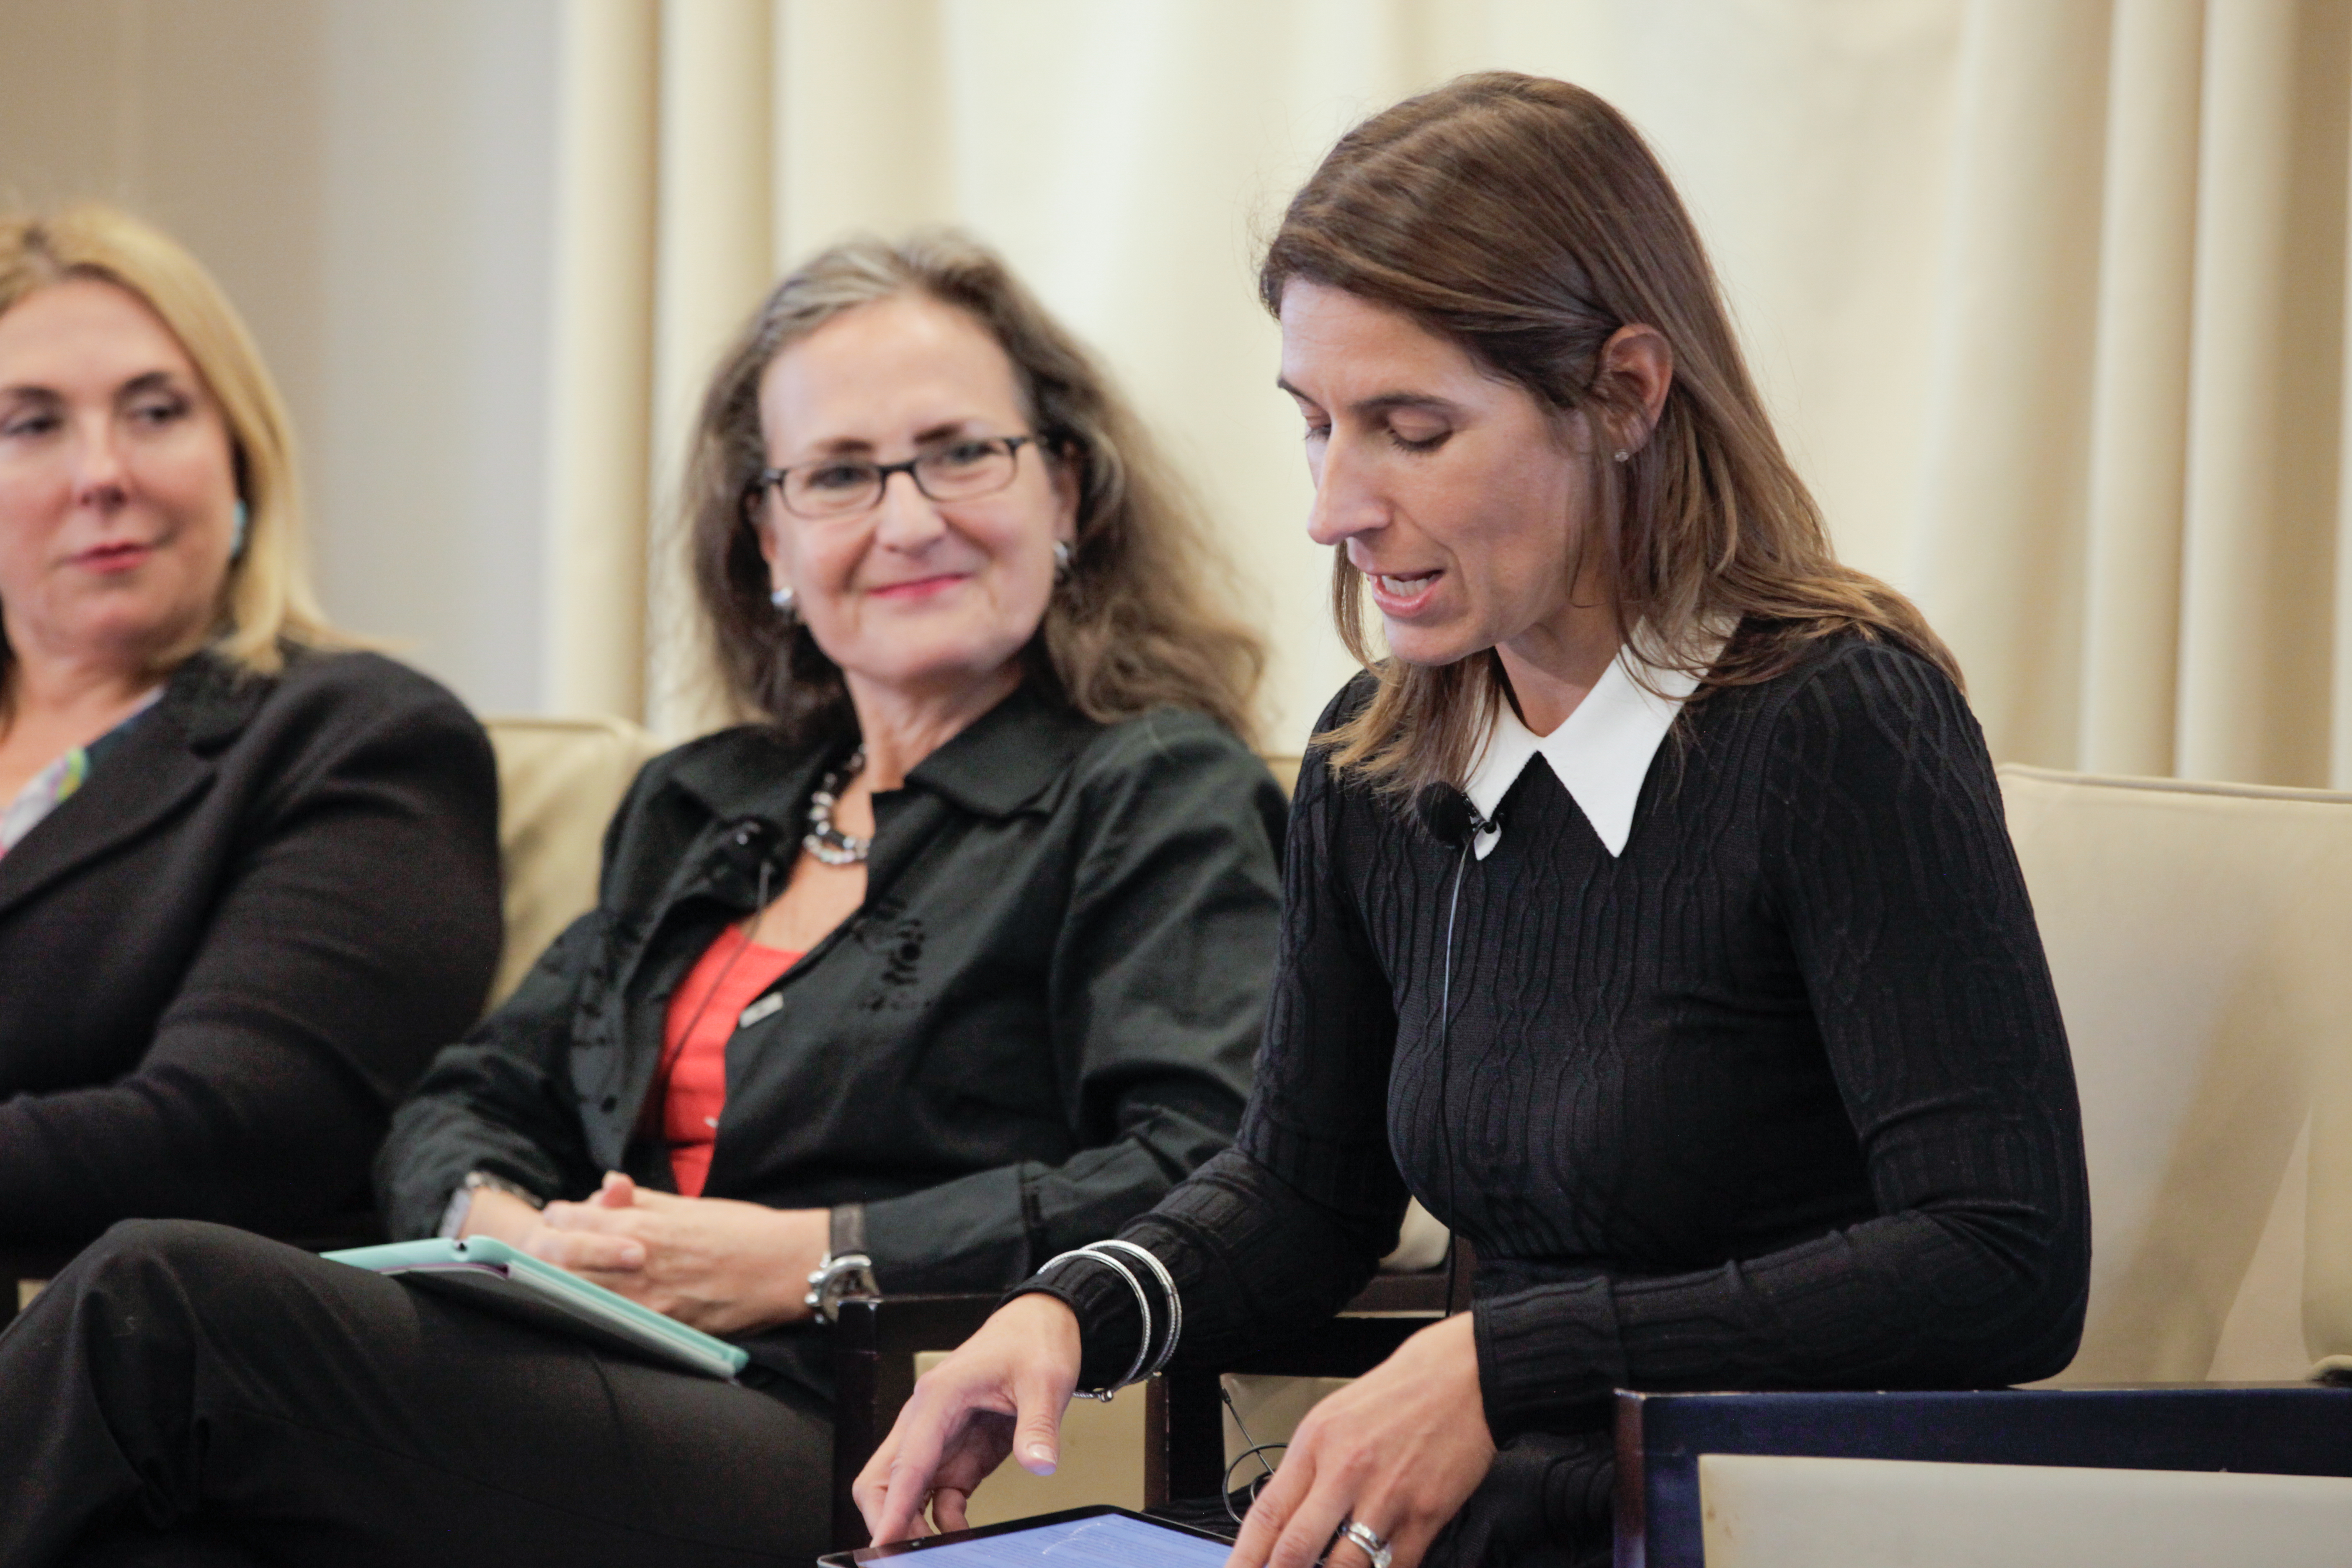 ISA board member Tracie Grella (AIG), at right, and Andrea Bonime-Blanc, CEO of GEC Risk Advisory, during a panel discussion of the ISA 15th Anniversary Conference